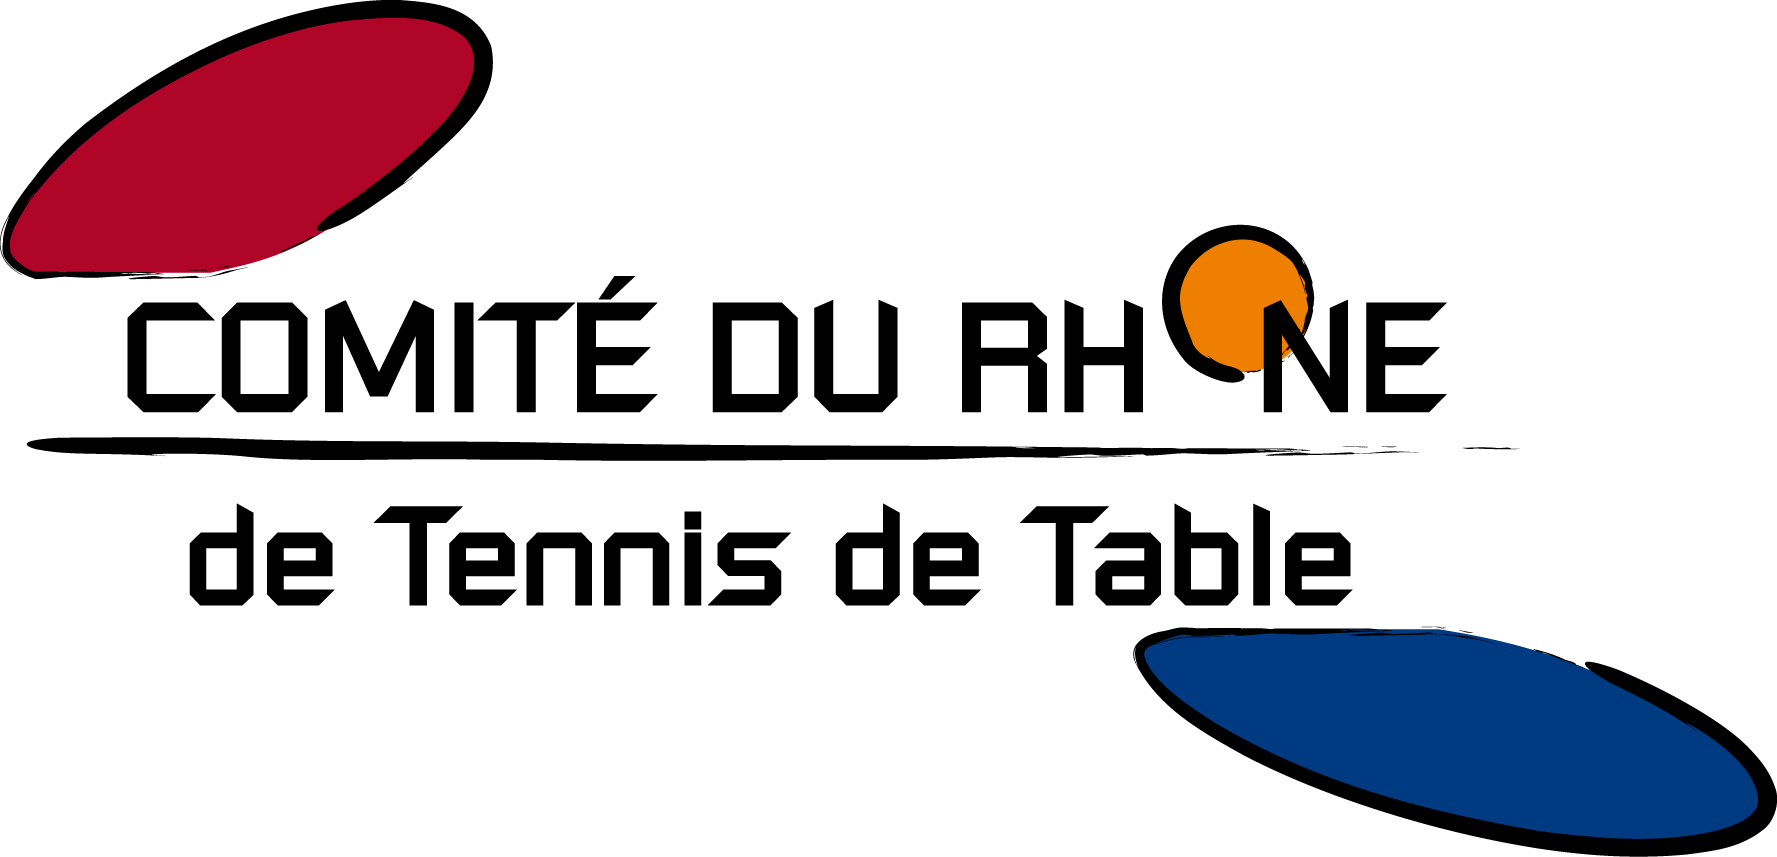 Comite du rhone de tennis de table - Comite departemental de tennis de table ...